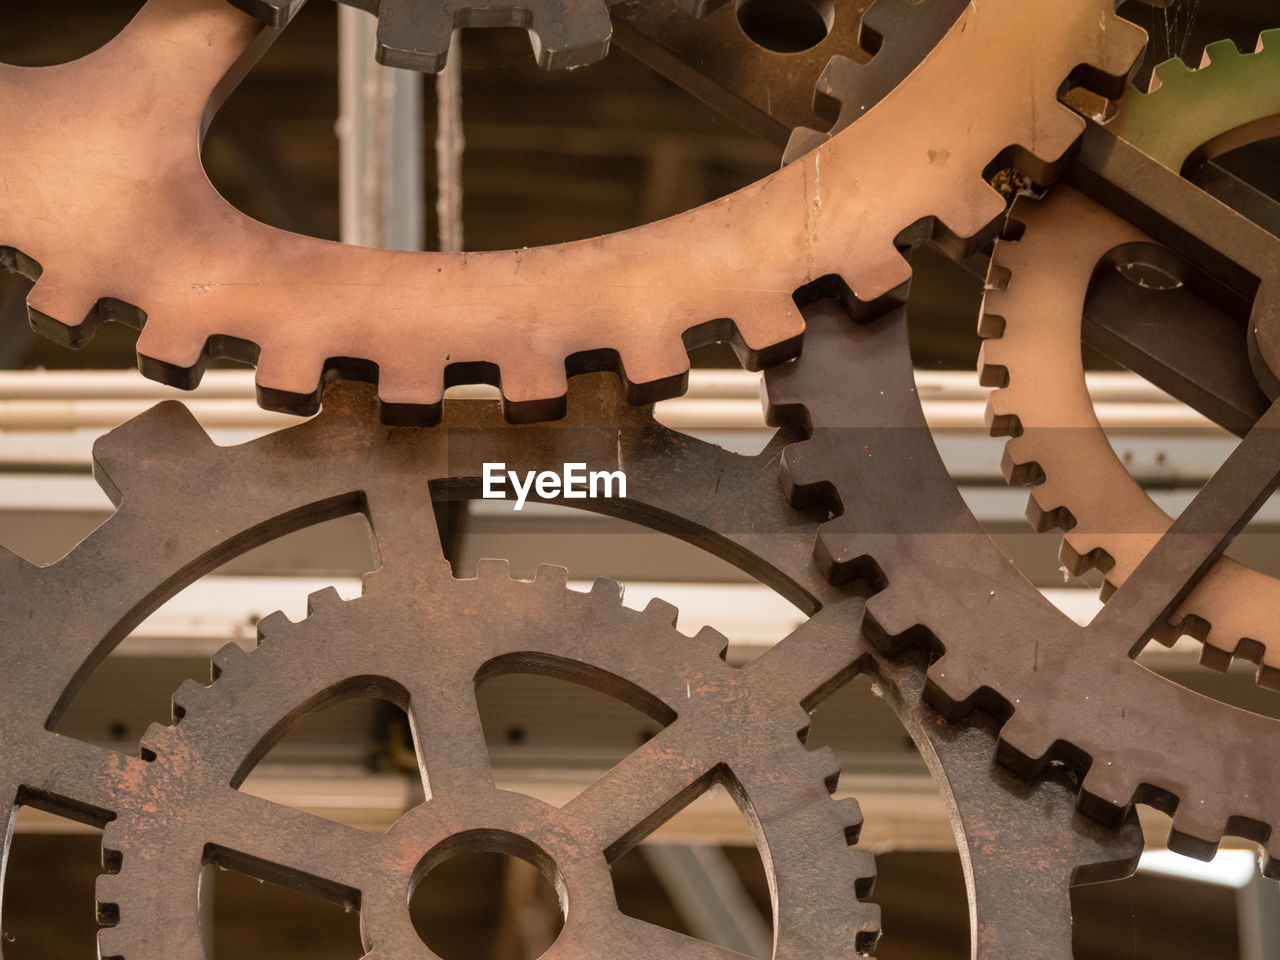 gear, machinery, metal, machine part, equipment, industry, close-up, technology, cooperation, complexity, teamwork, connection, wheel, no people, shape, indoors, factory, circle, pattern, transportation, manufacturing equipment, industrial equipment, iron - metal, silver colored